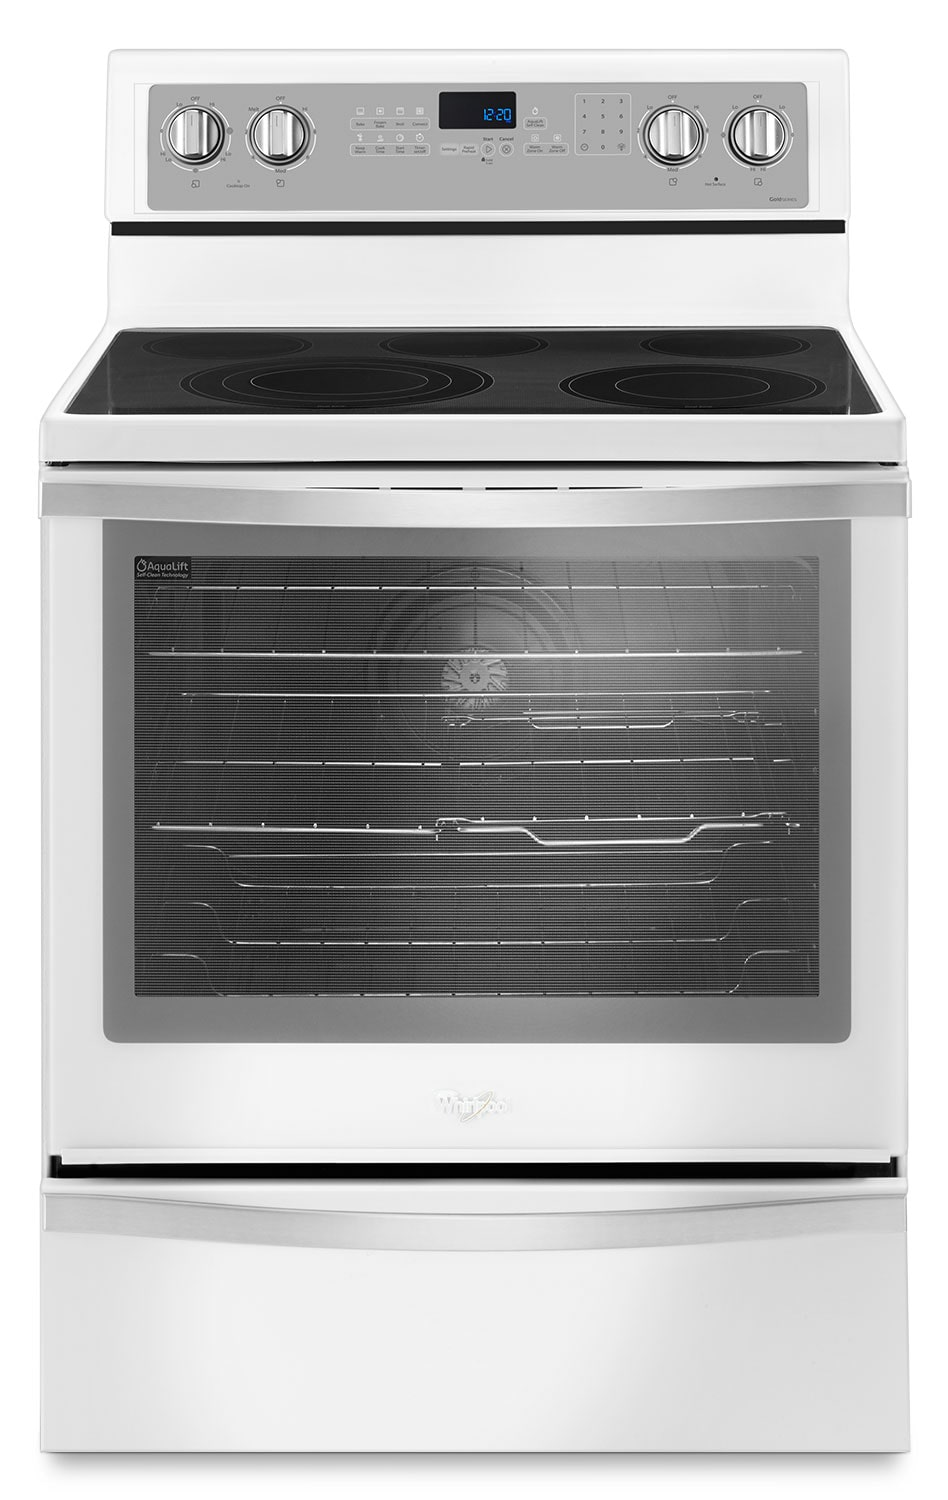 Cooking Products - Whirlpool White Freestanding Electric Range (6.4 Cu. Ft.) - YWFE745H0FH